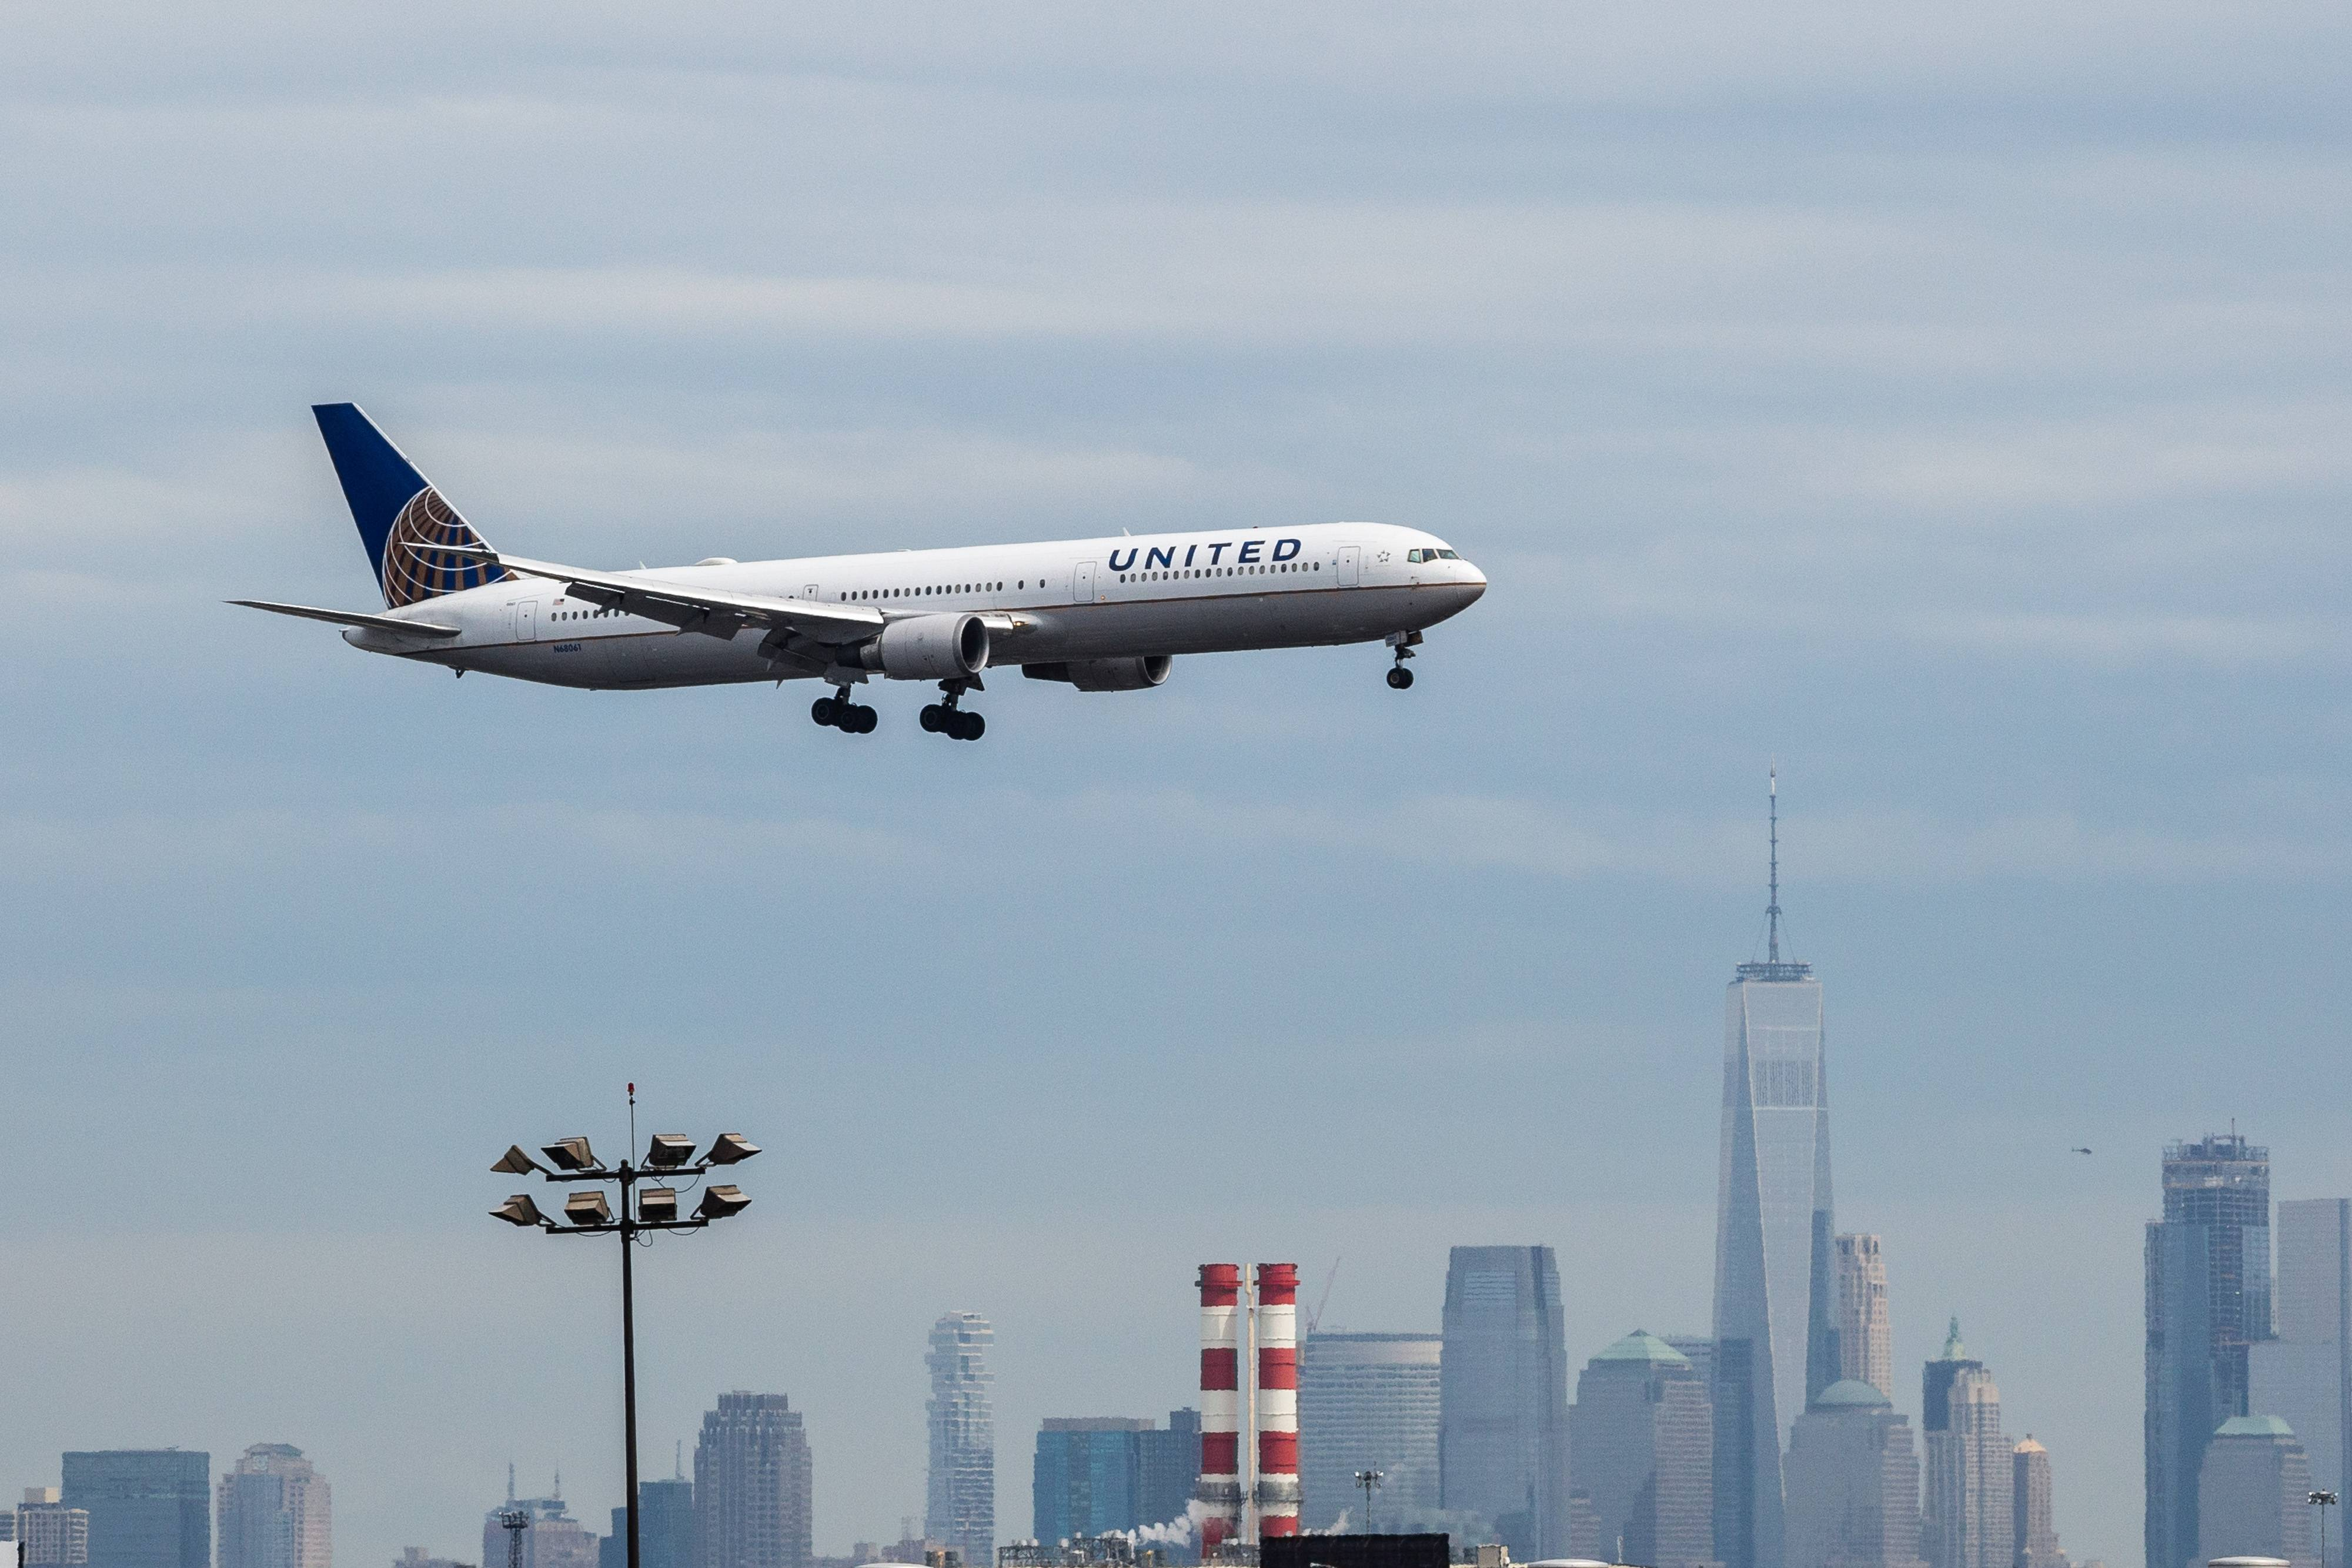 A United passenger jet prepares to land as the New York City skyline stands in the background at Newark Liberty International Airport in Newark, N.J., on April 12, 2017. MUST CREDIT: Bloomberg photo by Timothy Fadek.